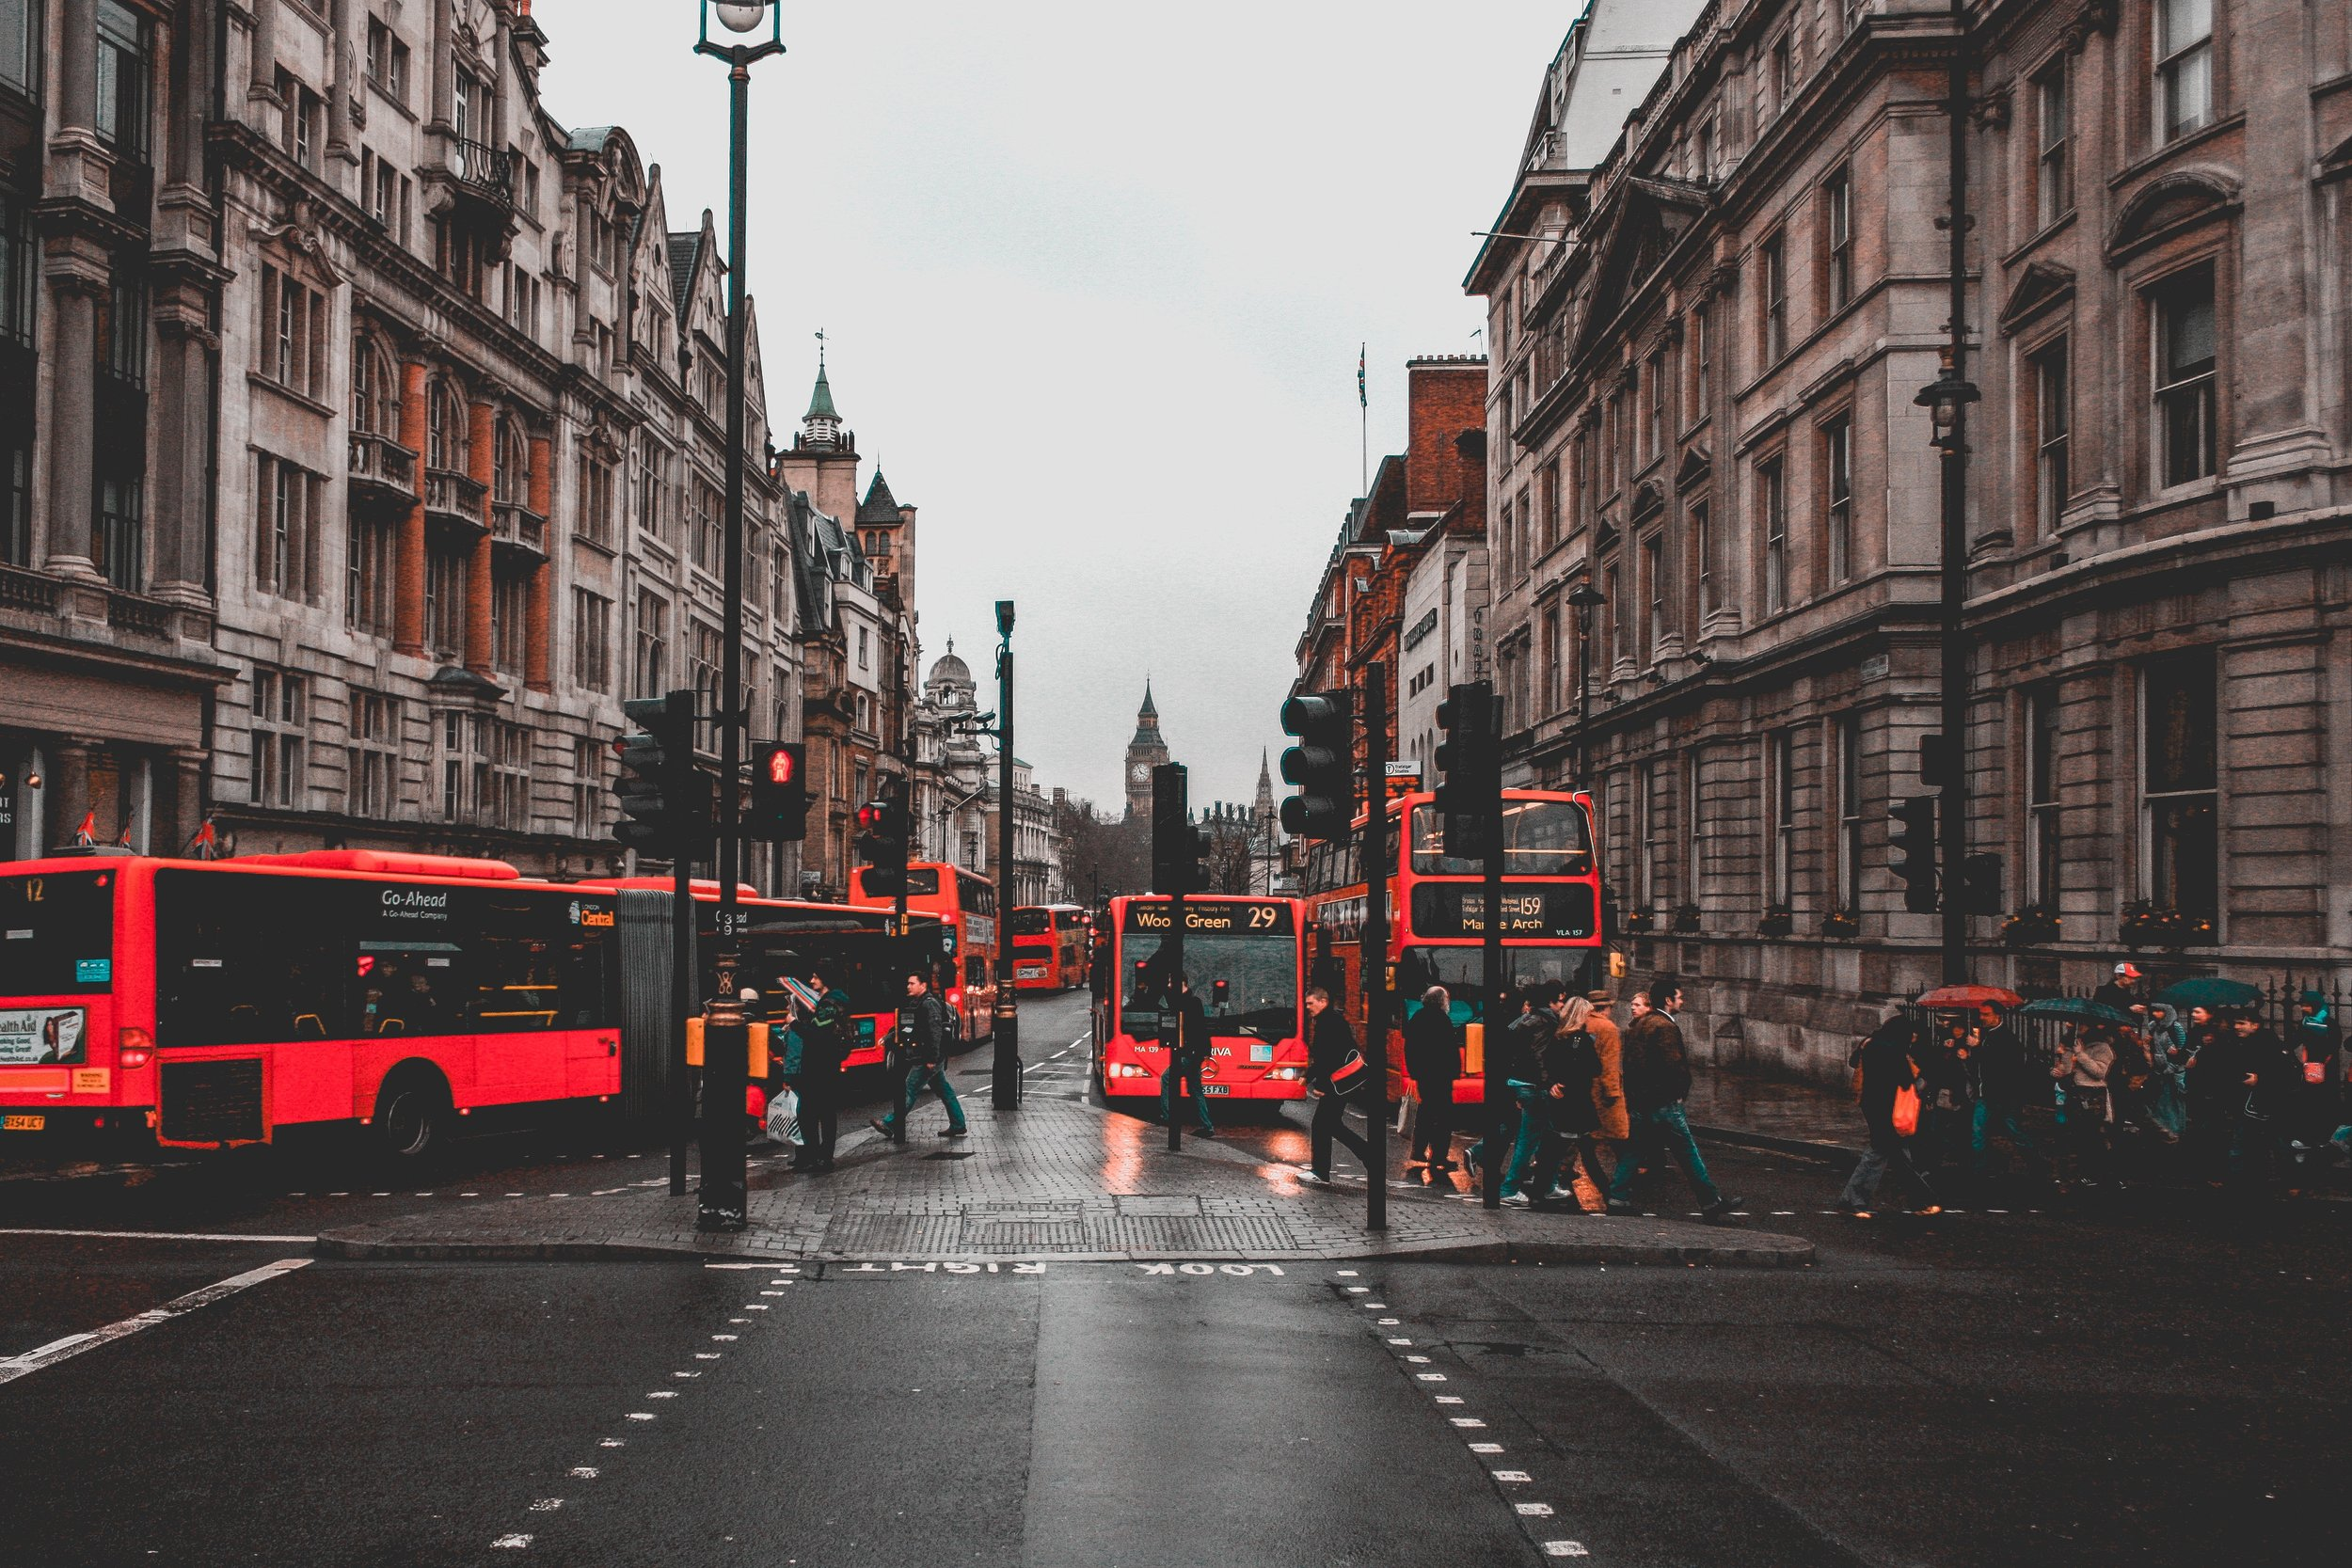 London. Photo by Oleg Magni from Pexels